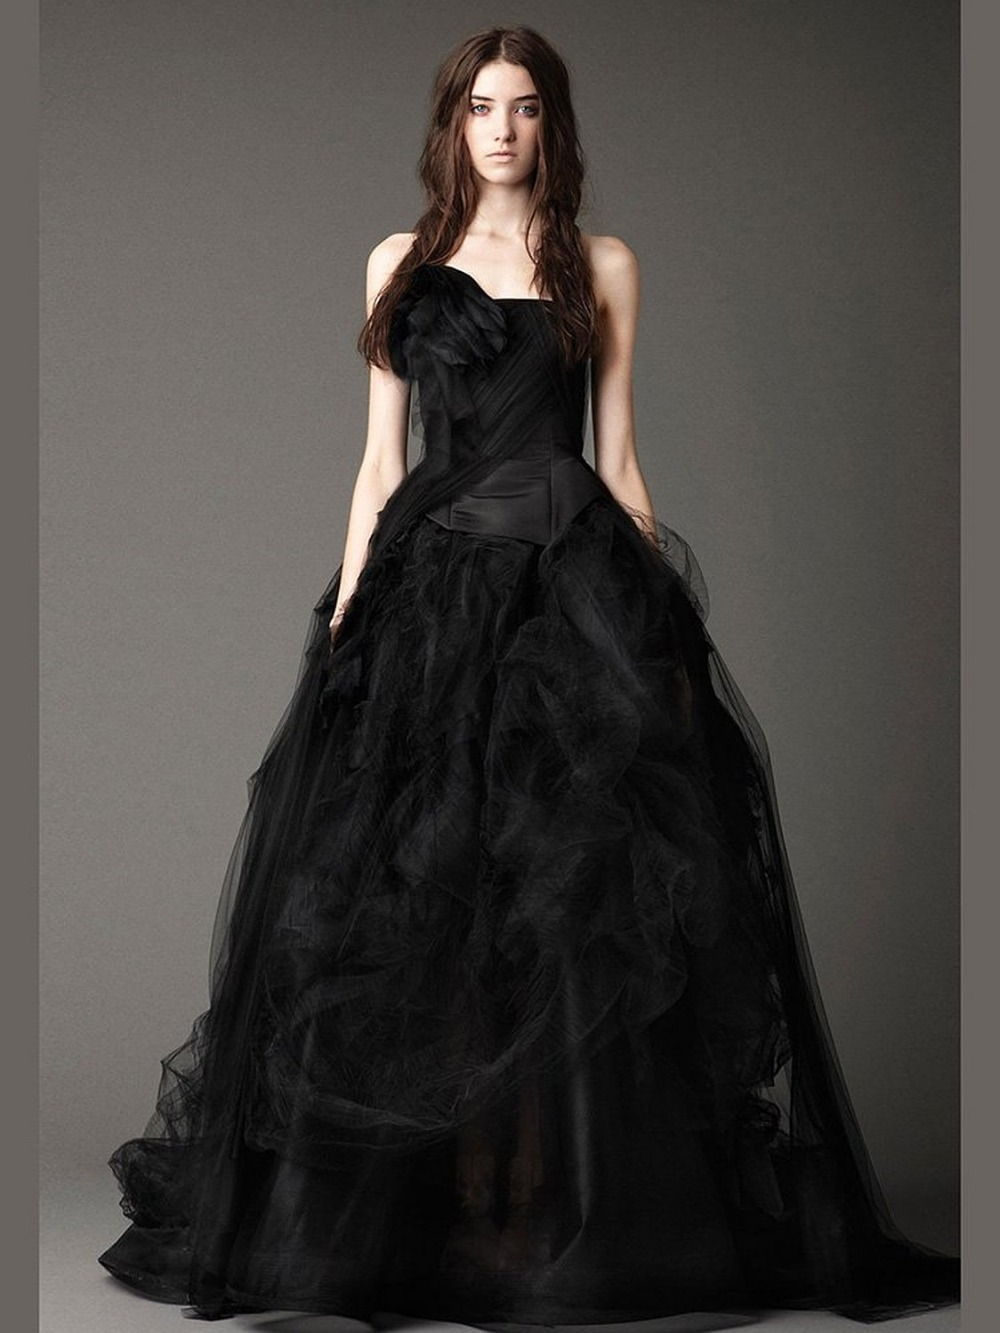 Victorian gothic wedding dress promotion shop for for Strapless and backless wedding dress